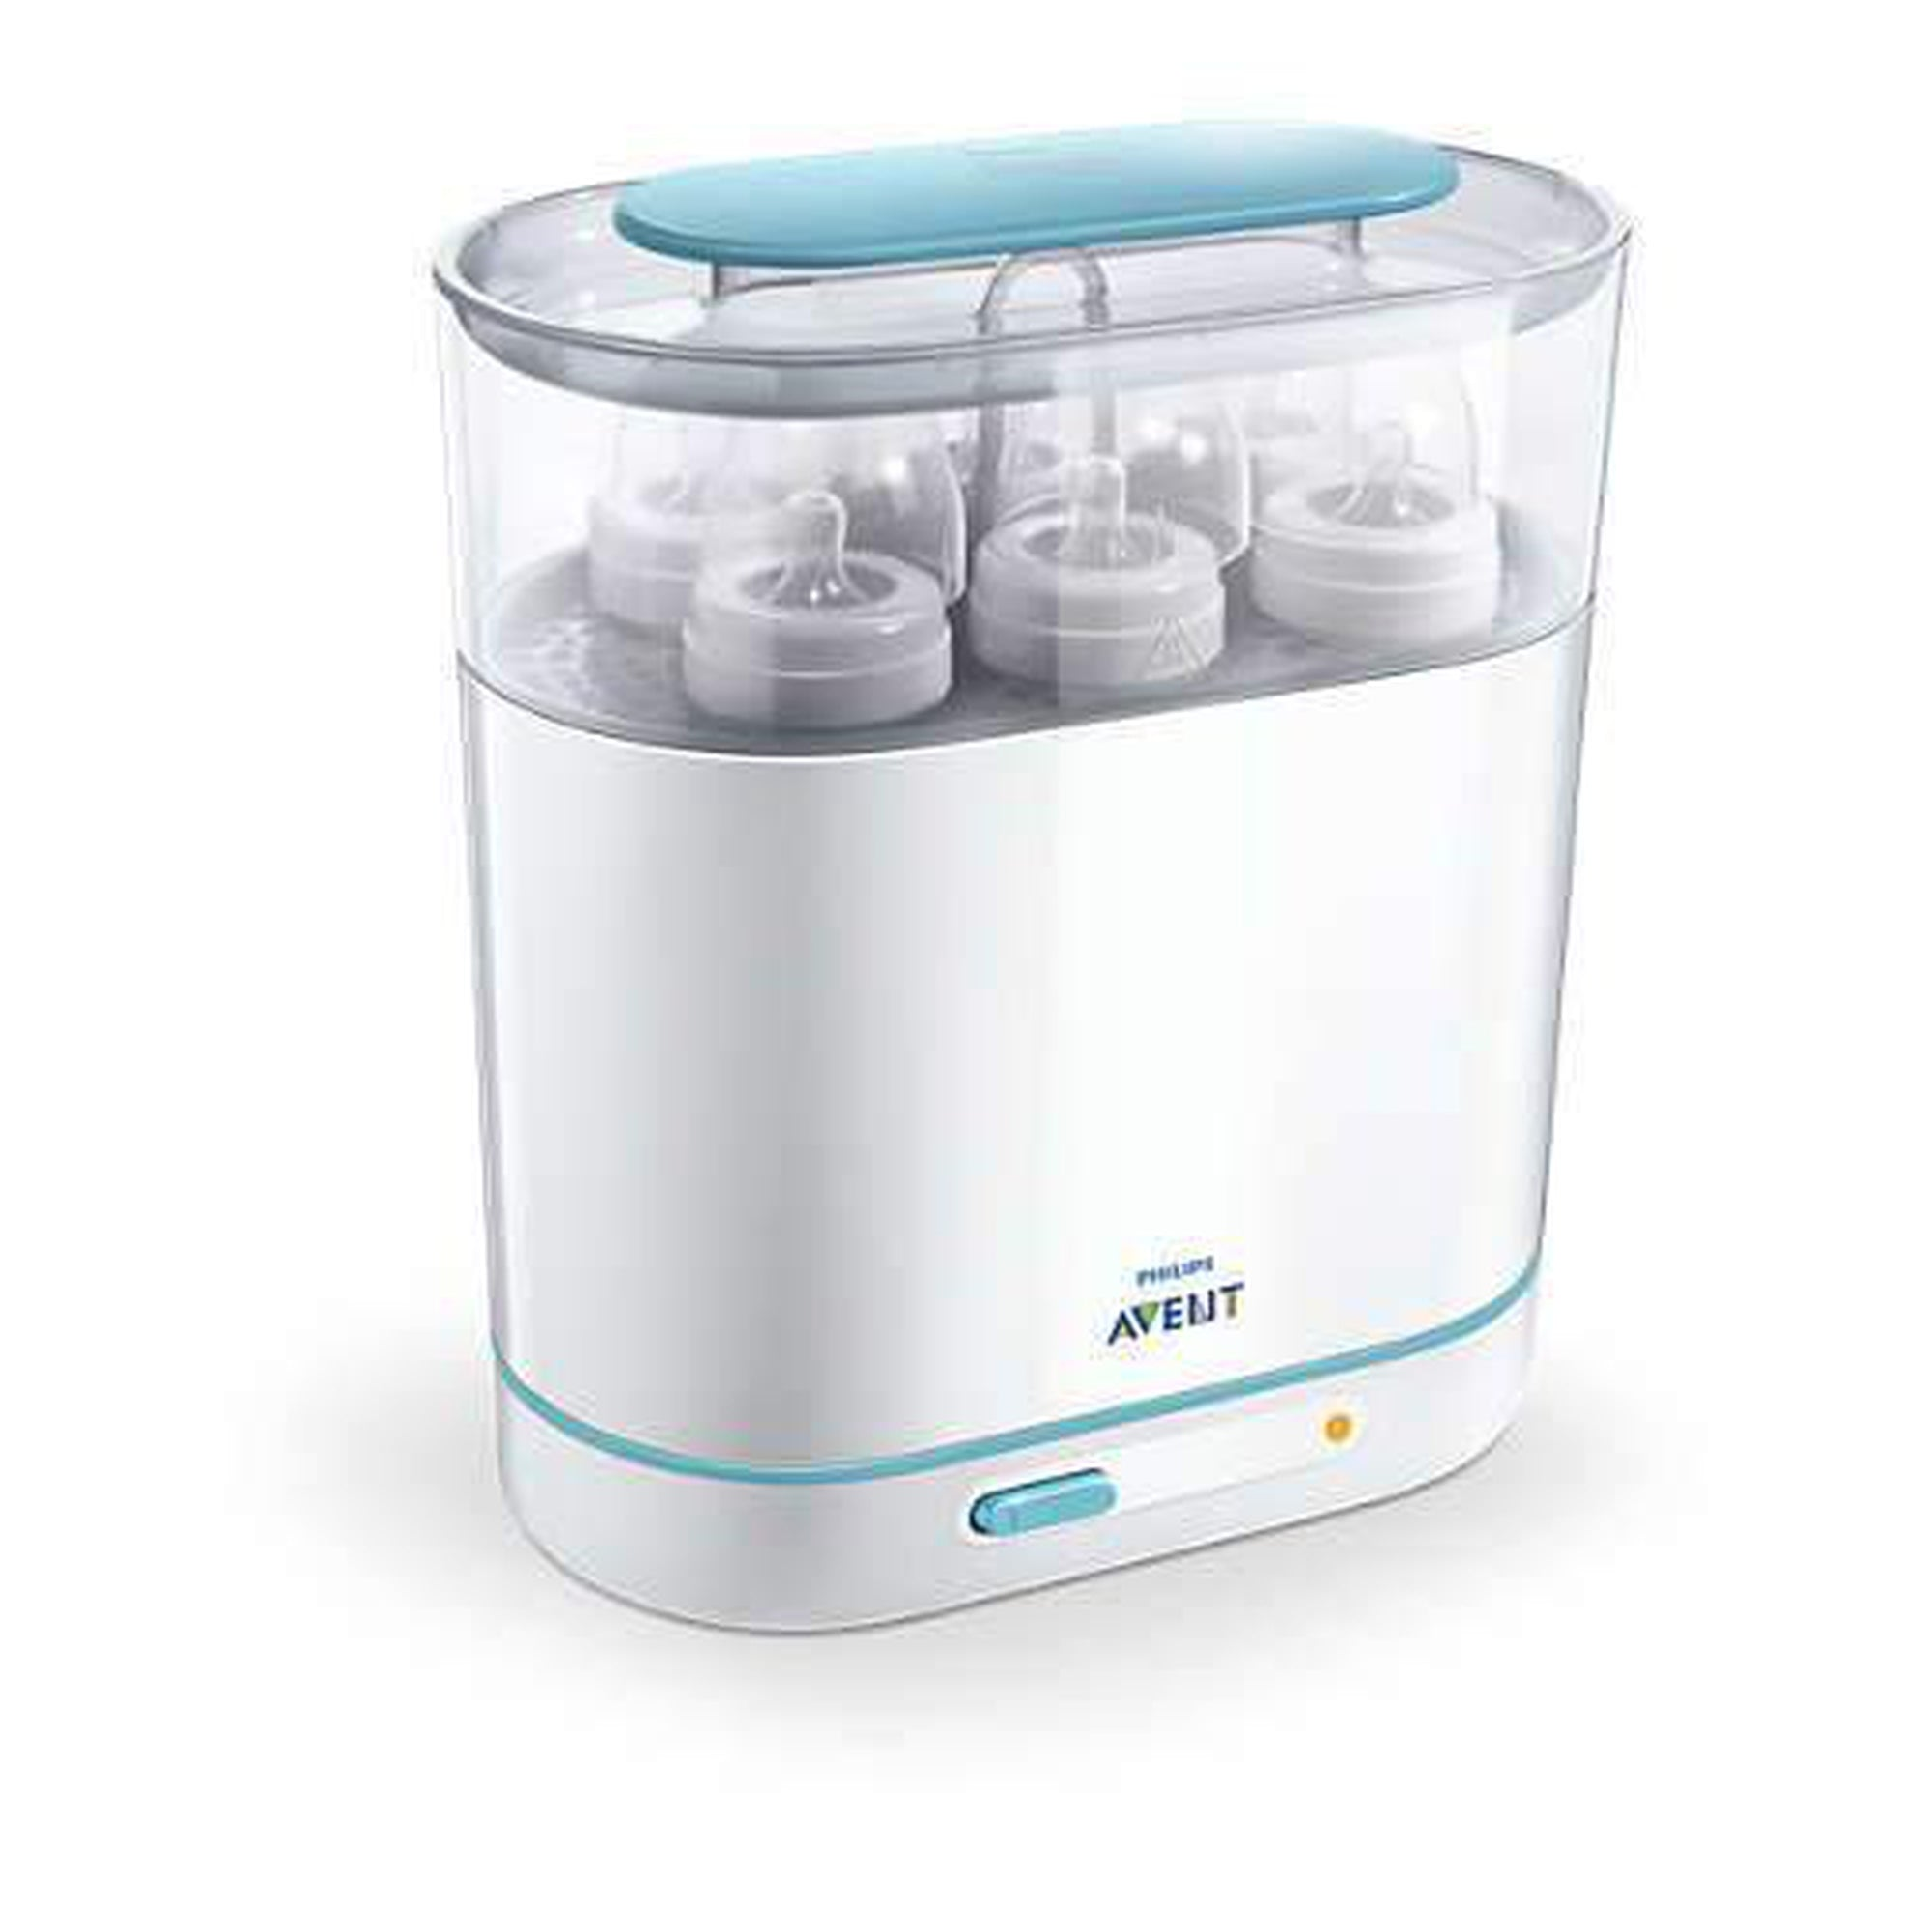 Avent 3 in 1 Electrical Steam Sterilizer With Bottle & Soother-Steriliser-Mother and Baby Shop Kenya's #1 Online Baby Shop